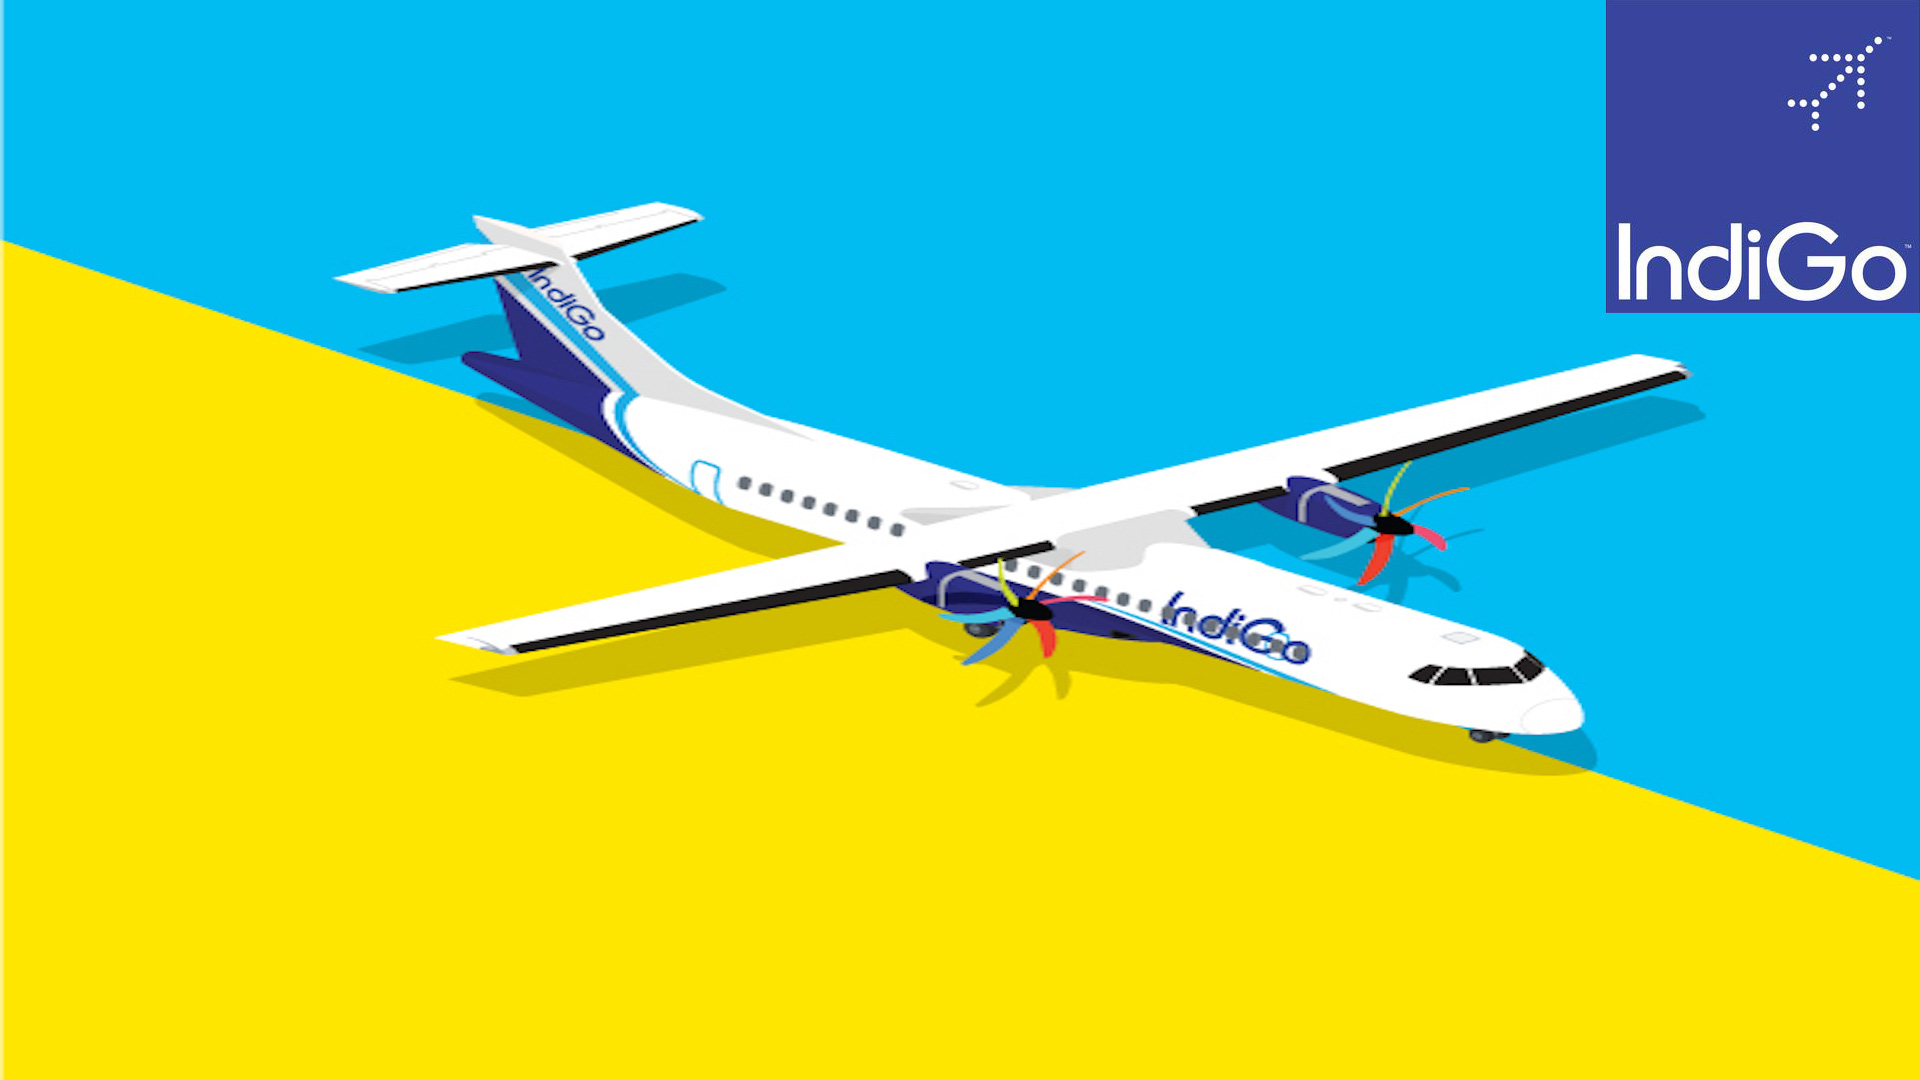 IndiGo is introducing new ATR flights on its existing network